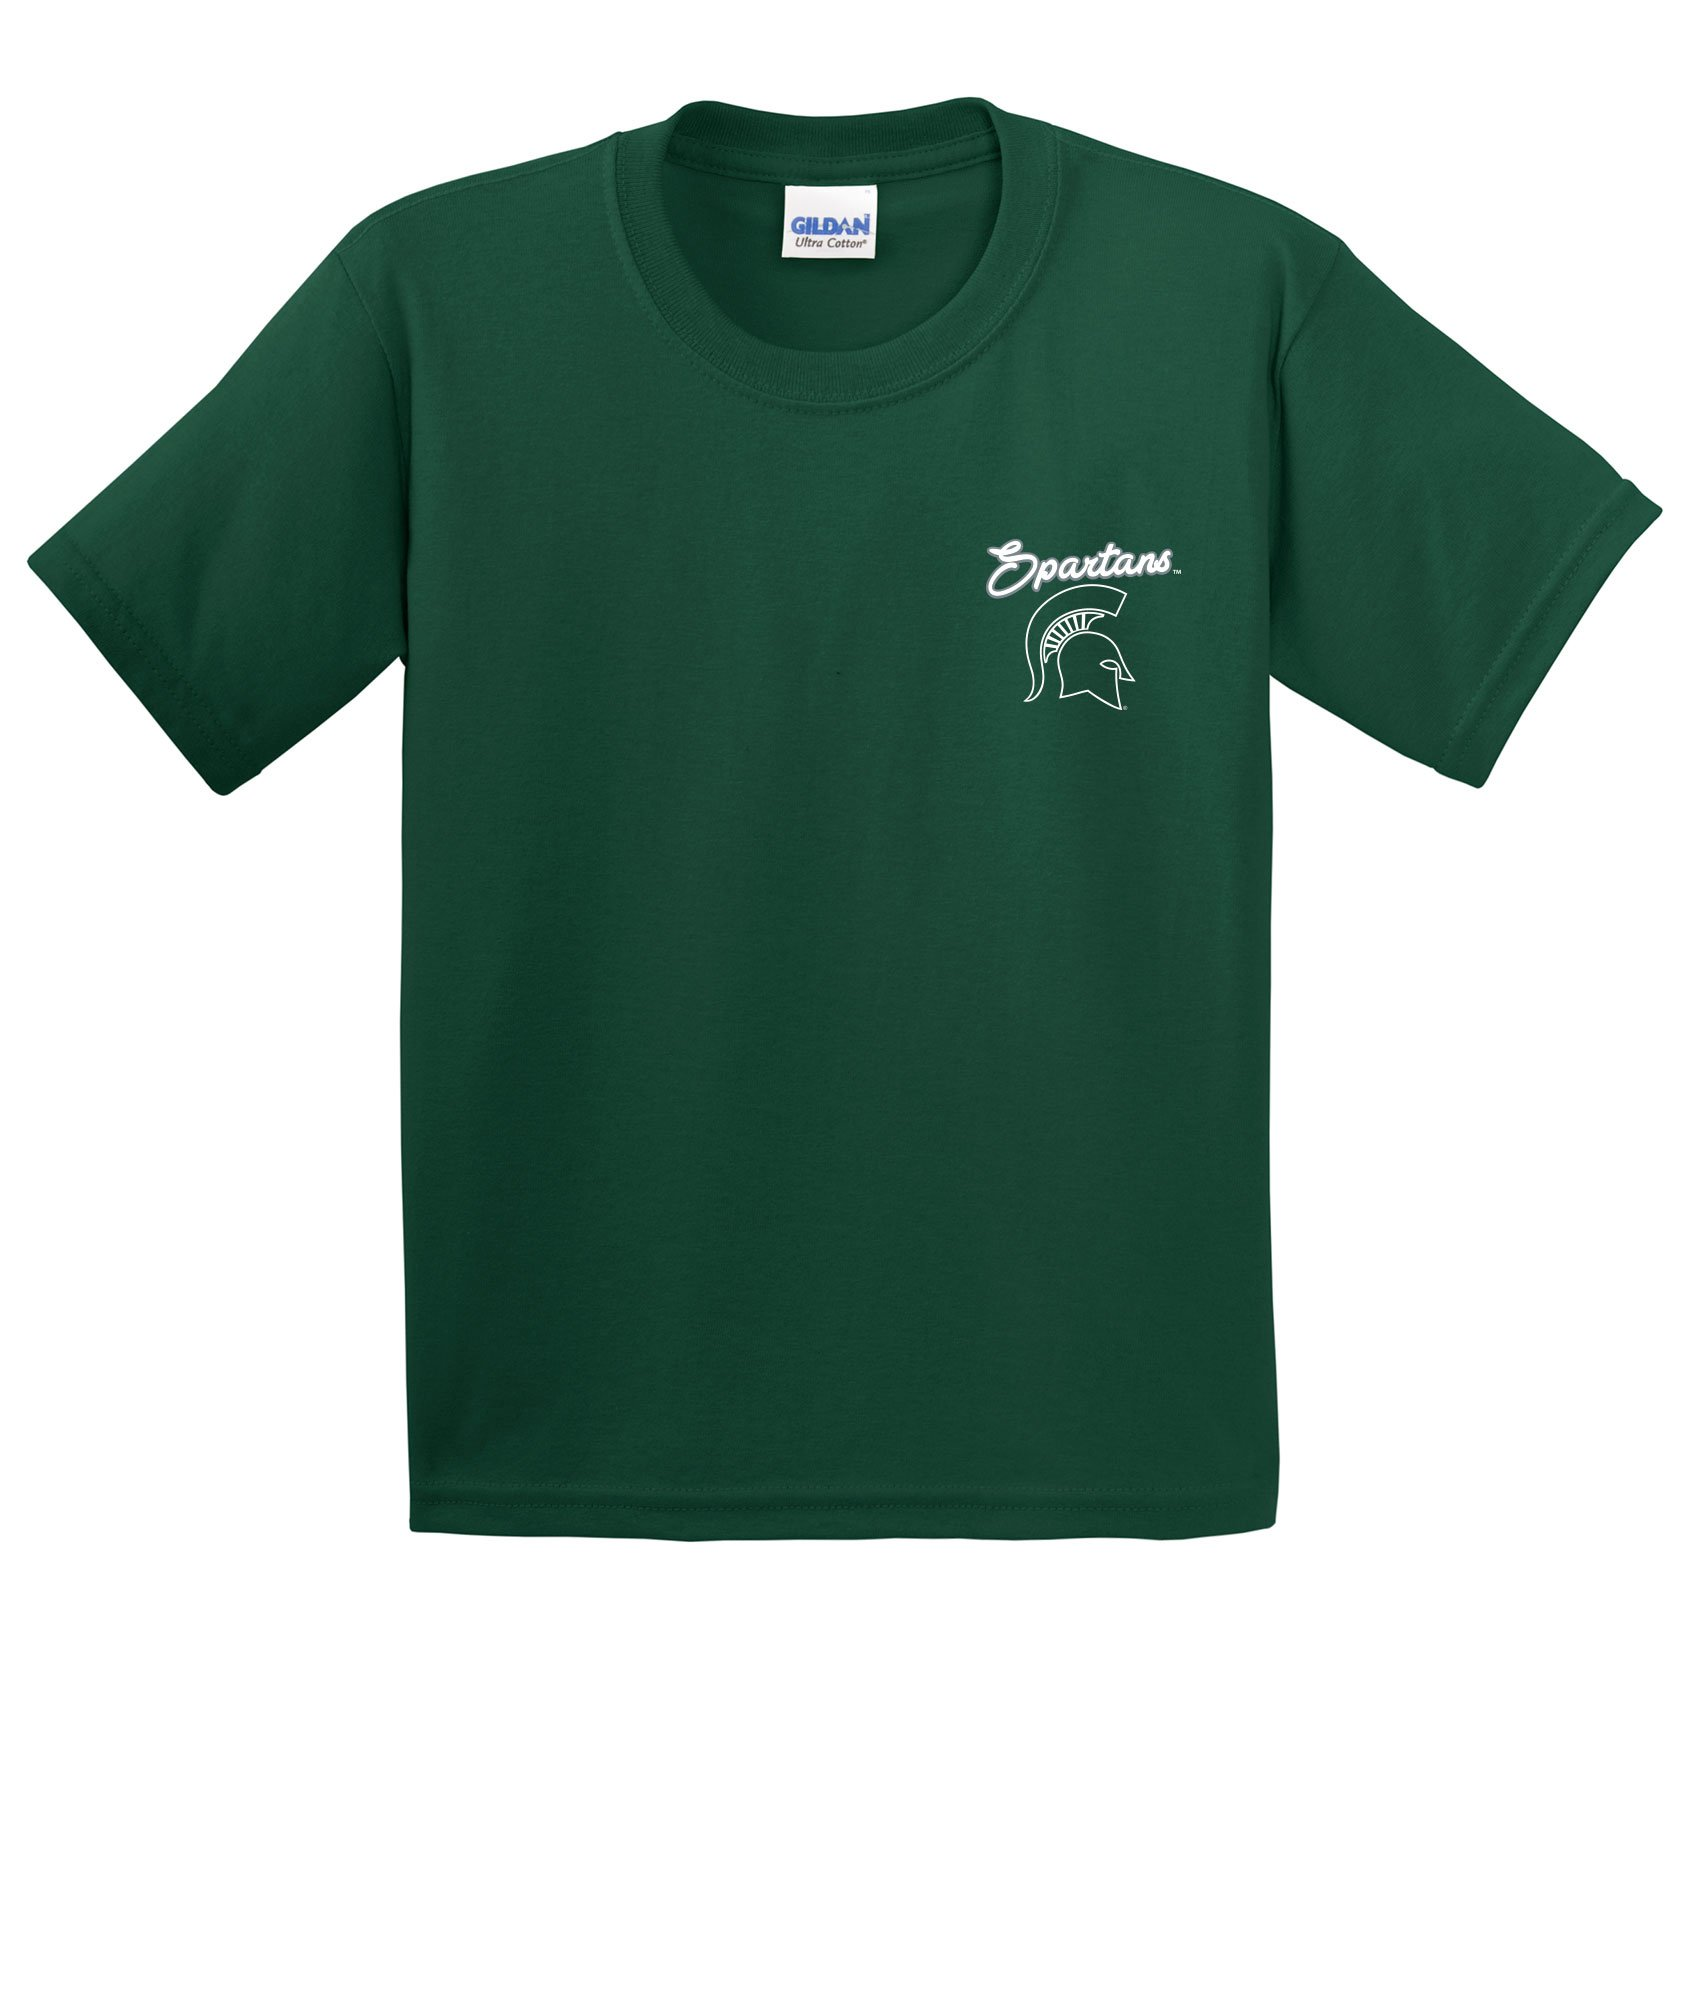 NCAA Michigan State Spartans Girls Cheer Loud Short Sleeve Cotton T-Shirt, Youth X-Large,ForestGreen